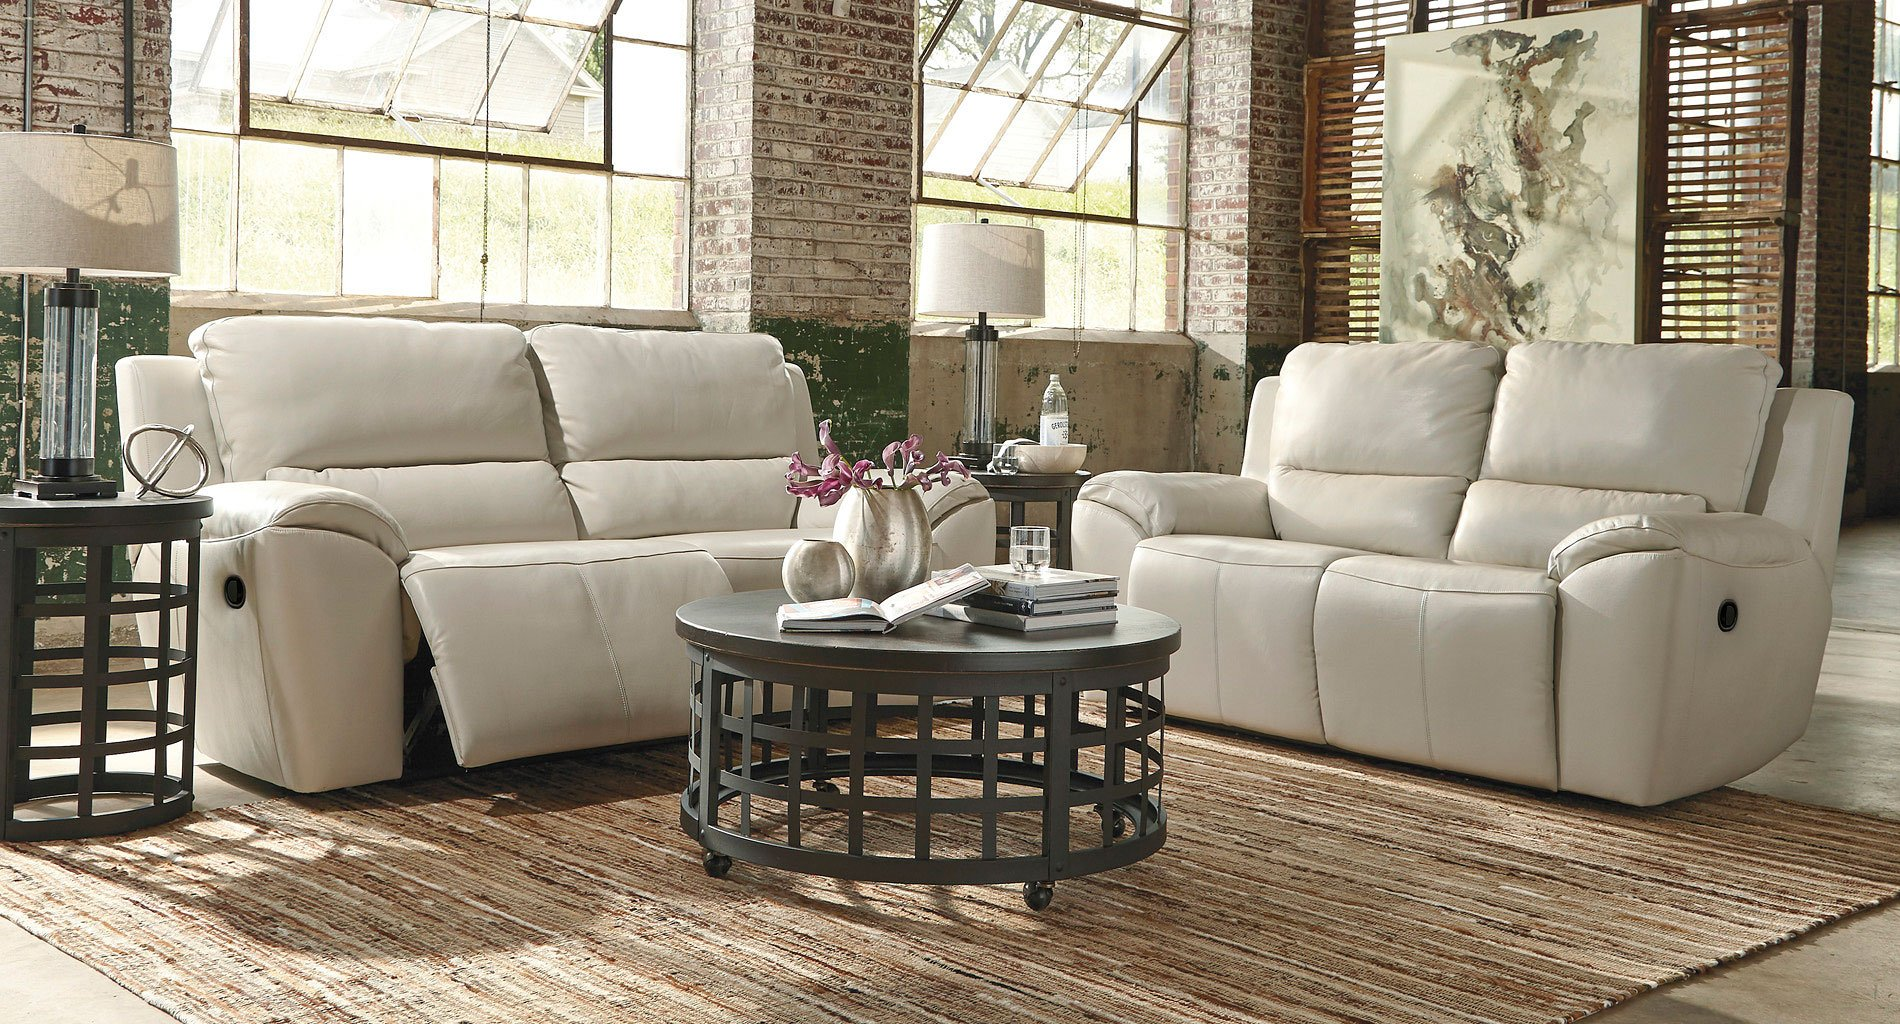 Sale Room Furniture Living Chairs